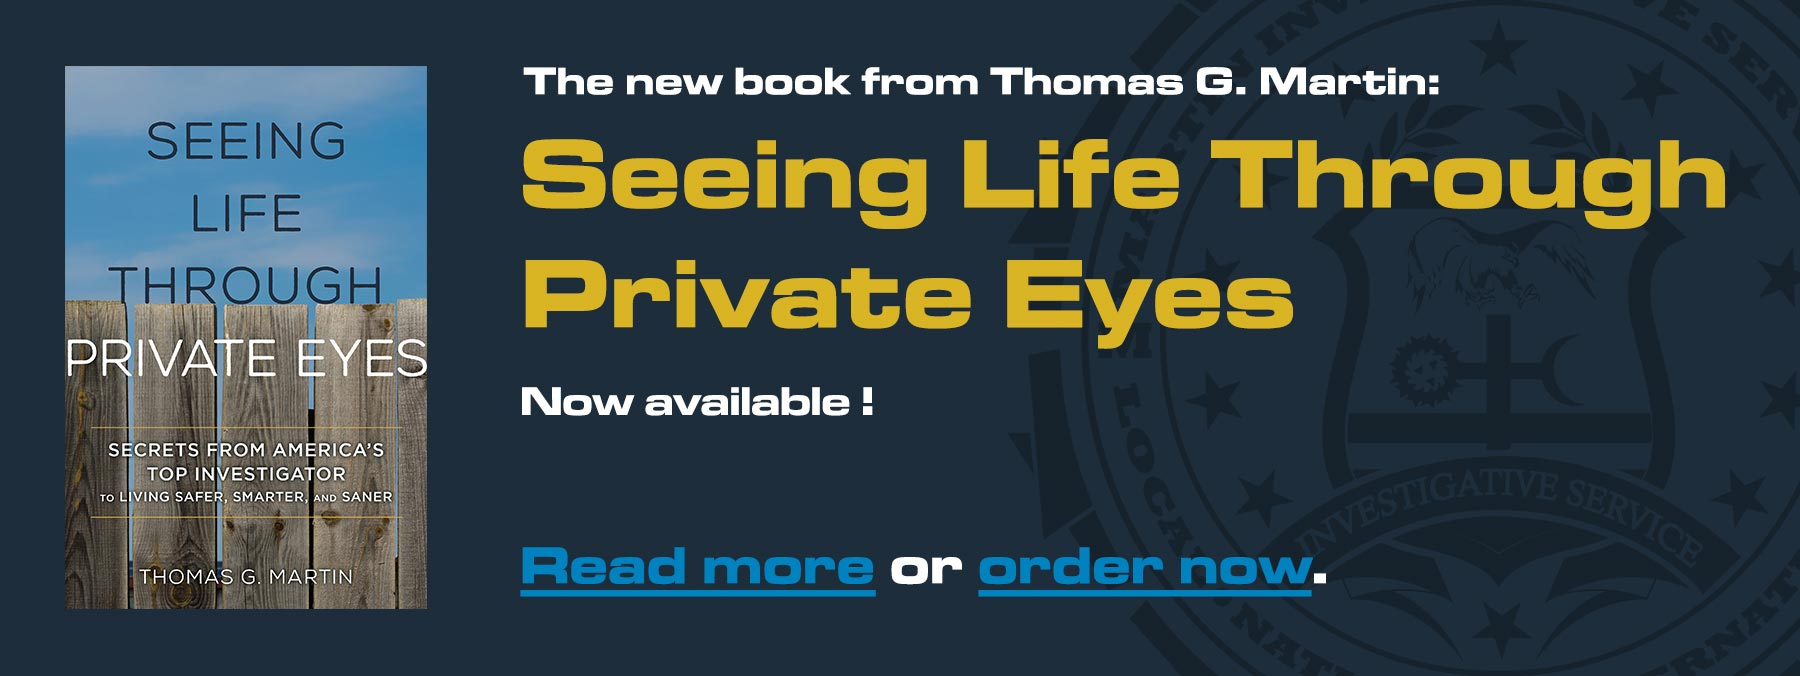 Seeing Life Through Private Eyes: The new book by Thomas G. Martin